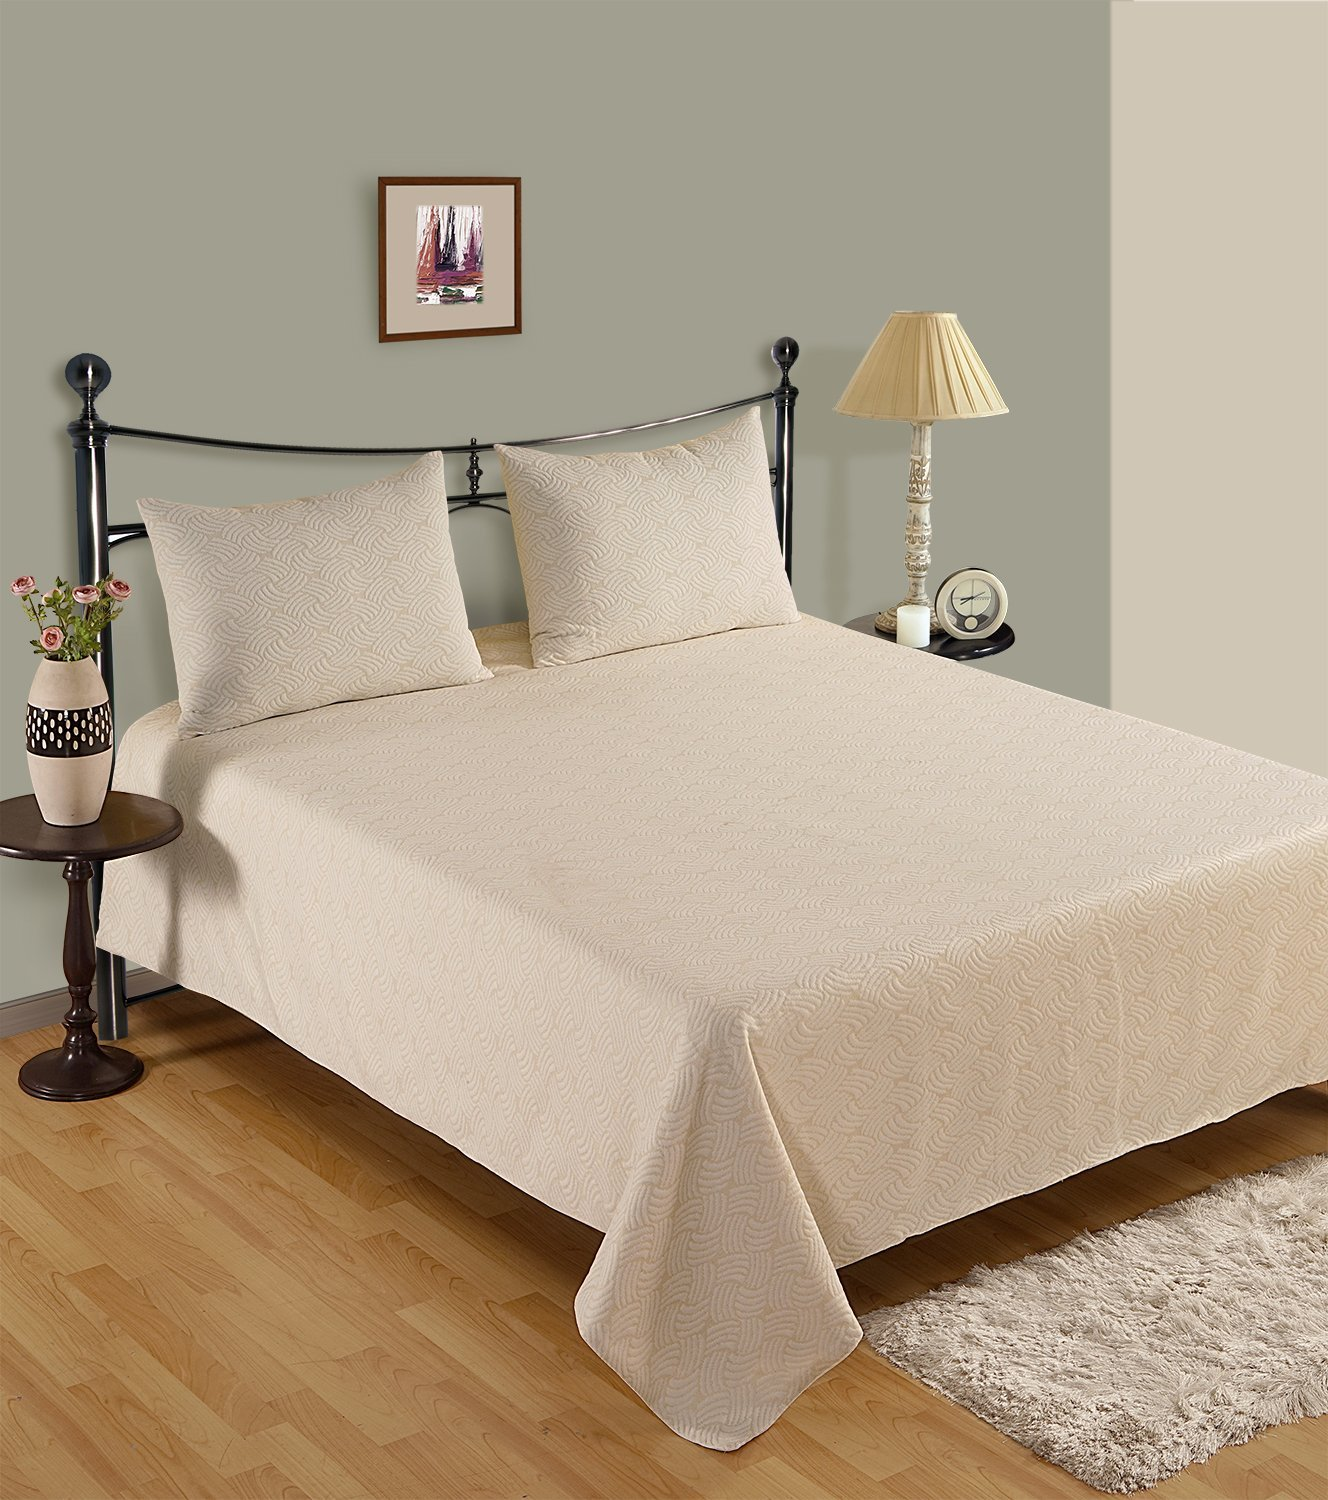 linenwalas Luxury MatelasseベッドスプレッドCoverlet Twin/Twin XL イエロー US_BED_183-T B0753DXM5S Pale Yellow Pattern Twin/Twin XL